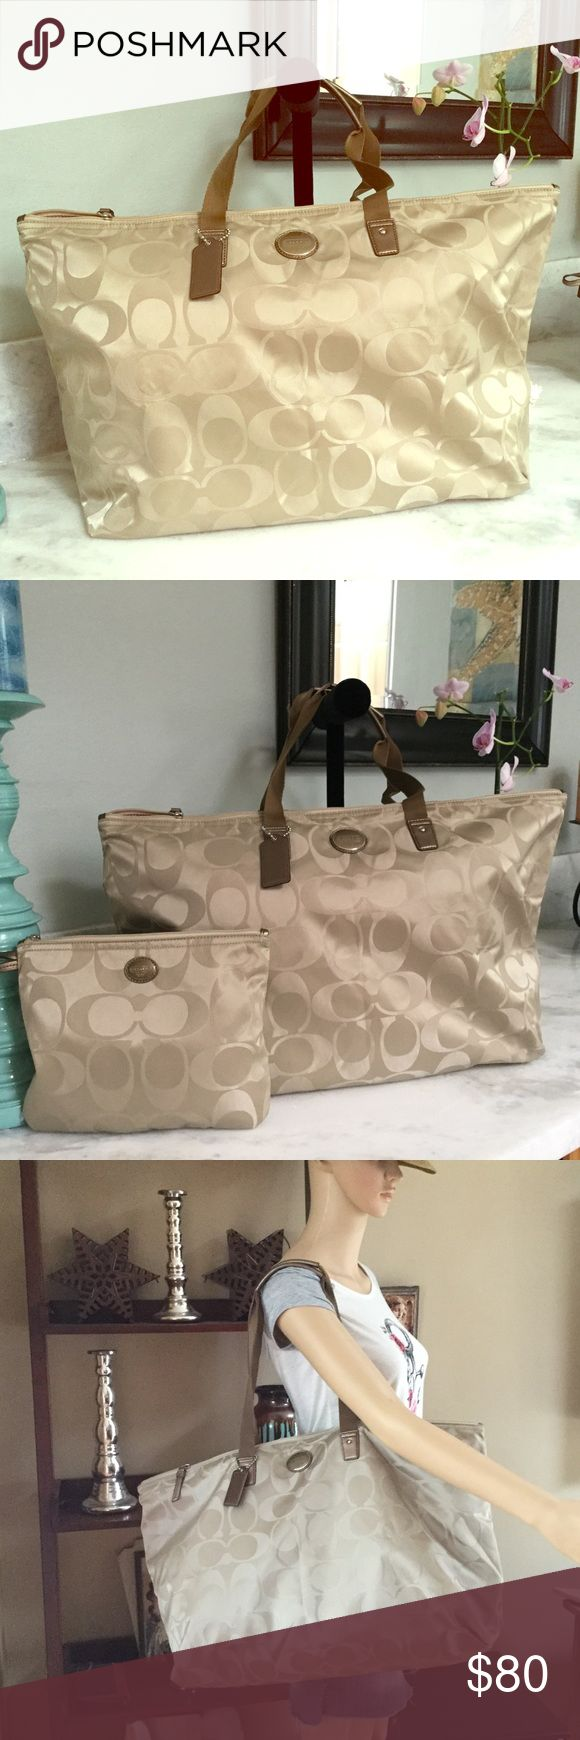 COACH TRAVEL BAG Beautiful coach bag it's very big with detachable small bag in perfect conditions no flaws it measures 22x14 small bag 11x8 cloths like material Coach Bags Travel Bags